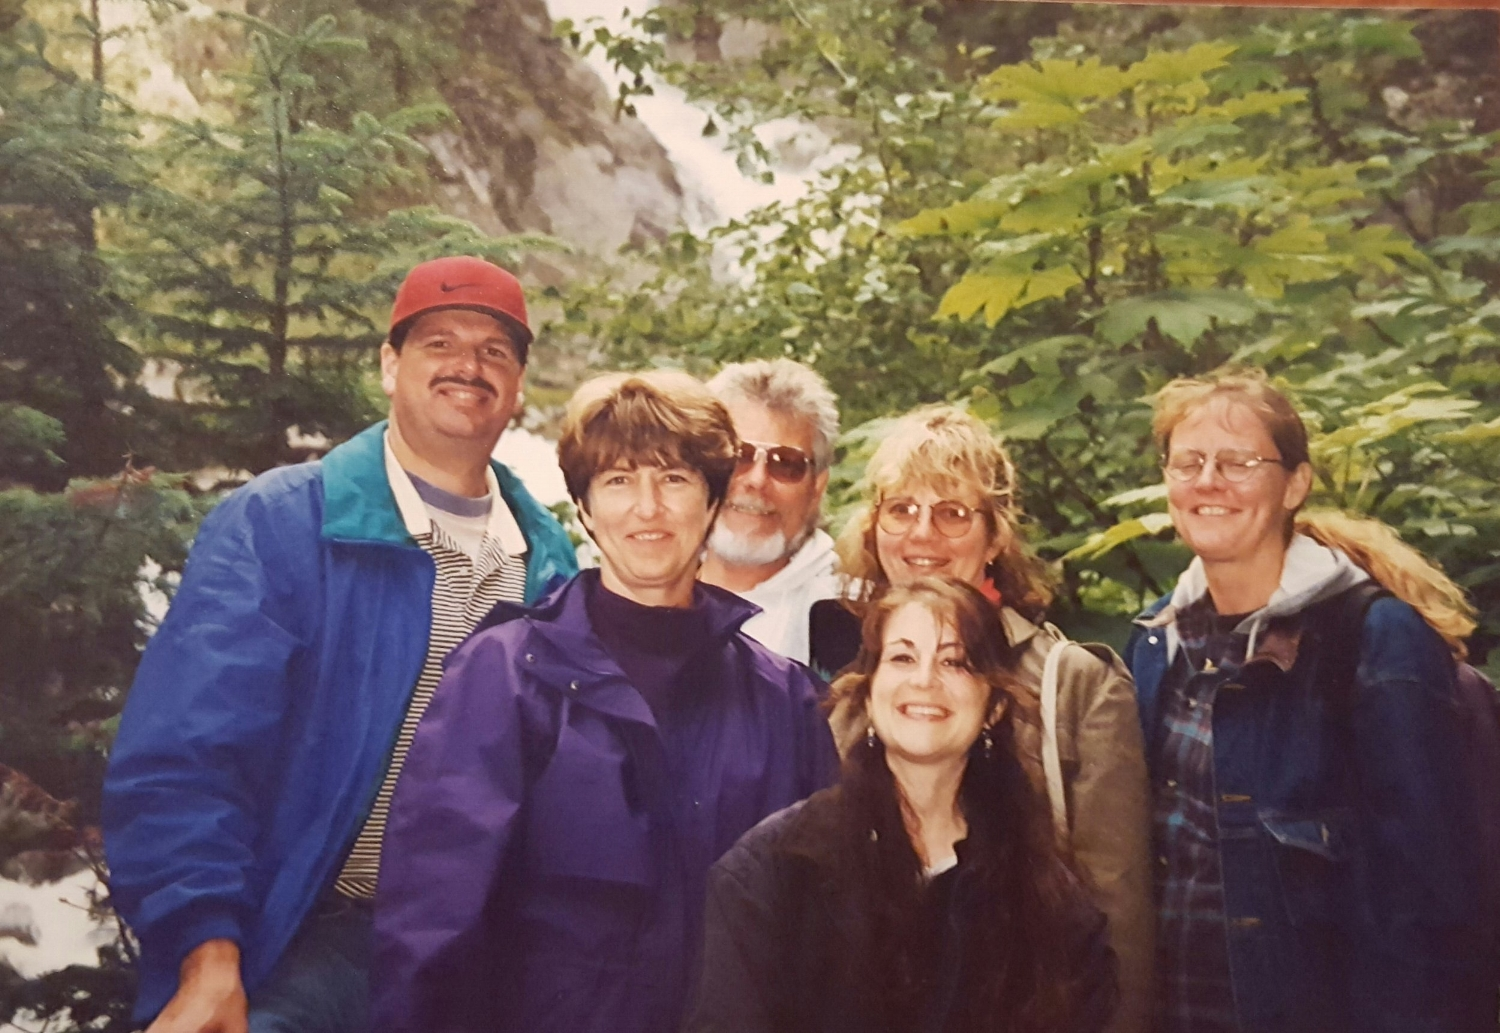 WCCC's Founders in the Yukon in 1997